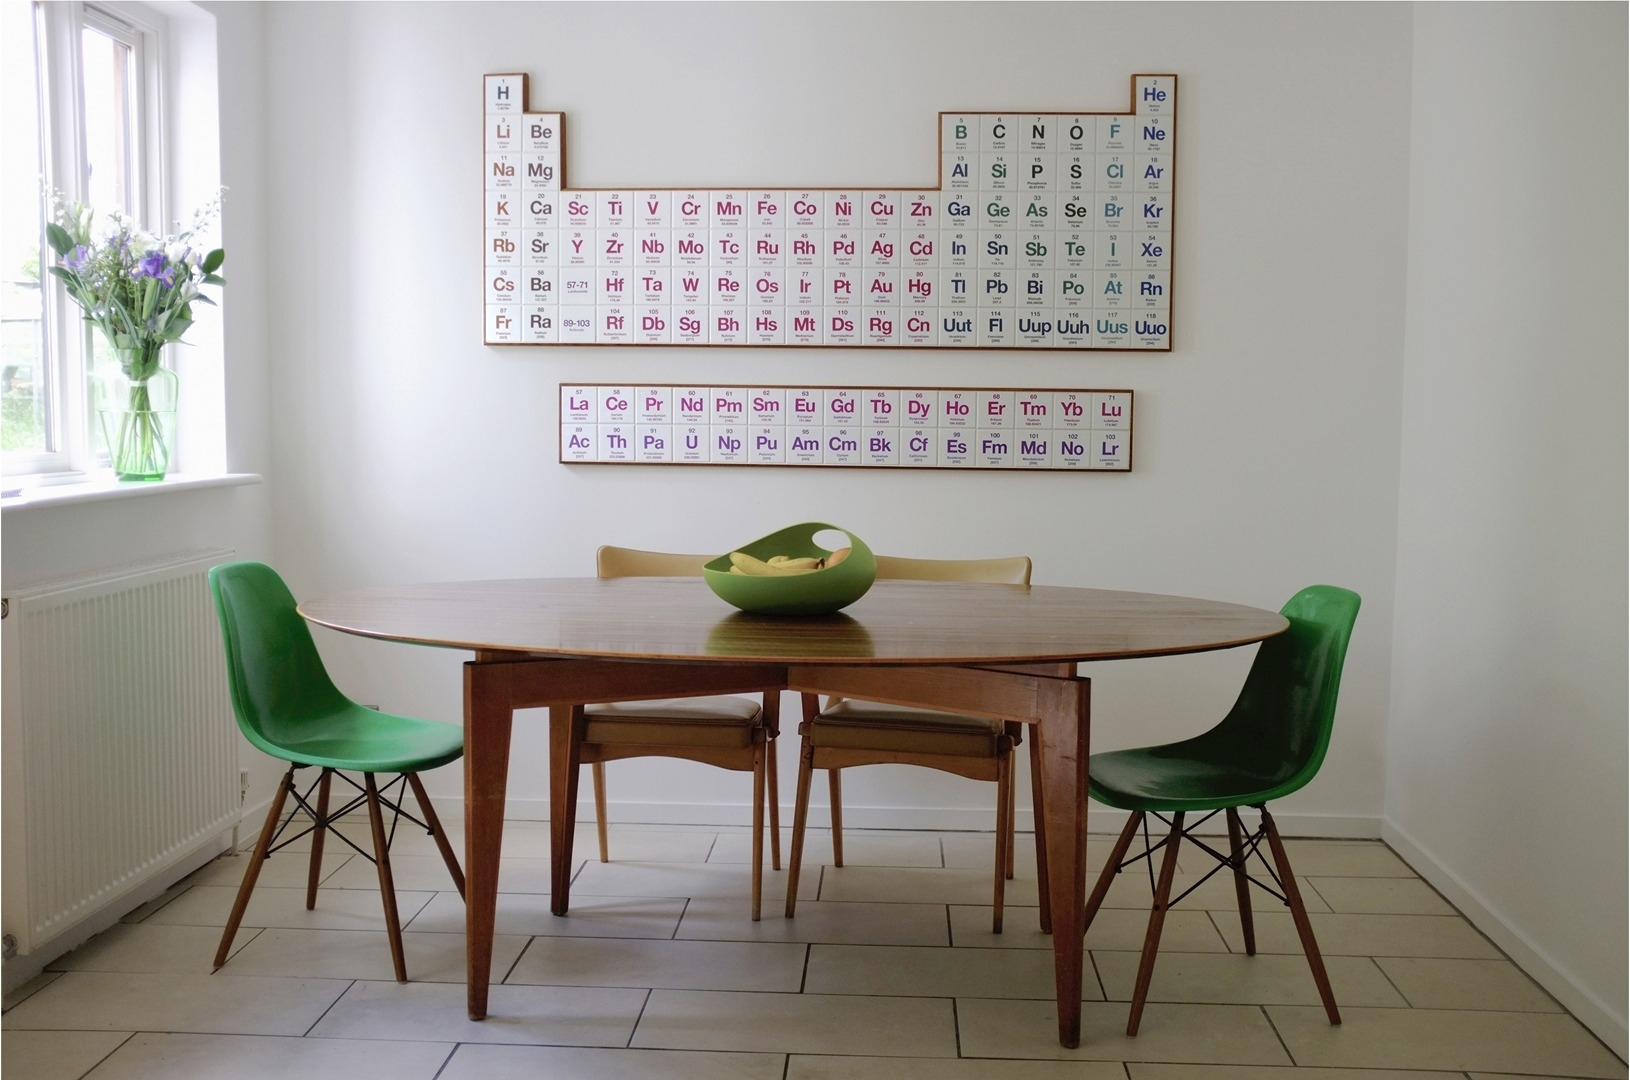 Periodic Table | Higgs & Crick With Regard To Most Current Periodic Table Wall Art (Gallery 2 of 20)